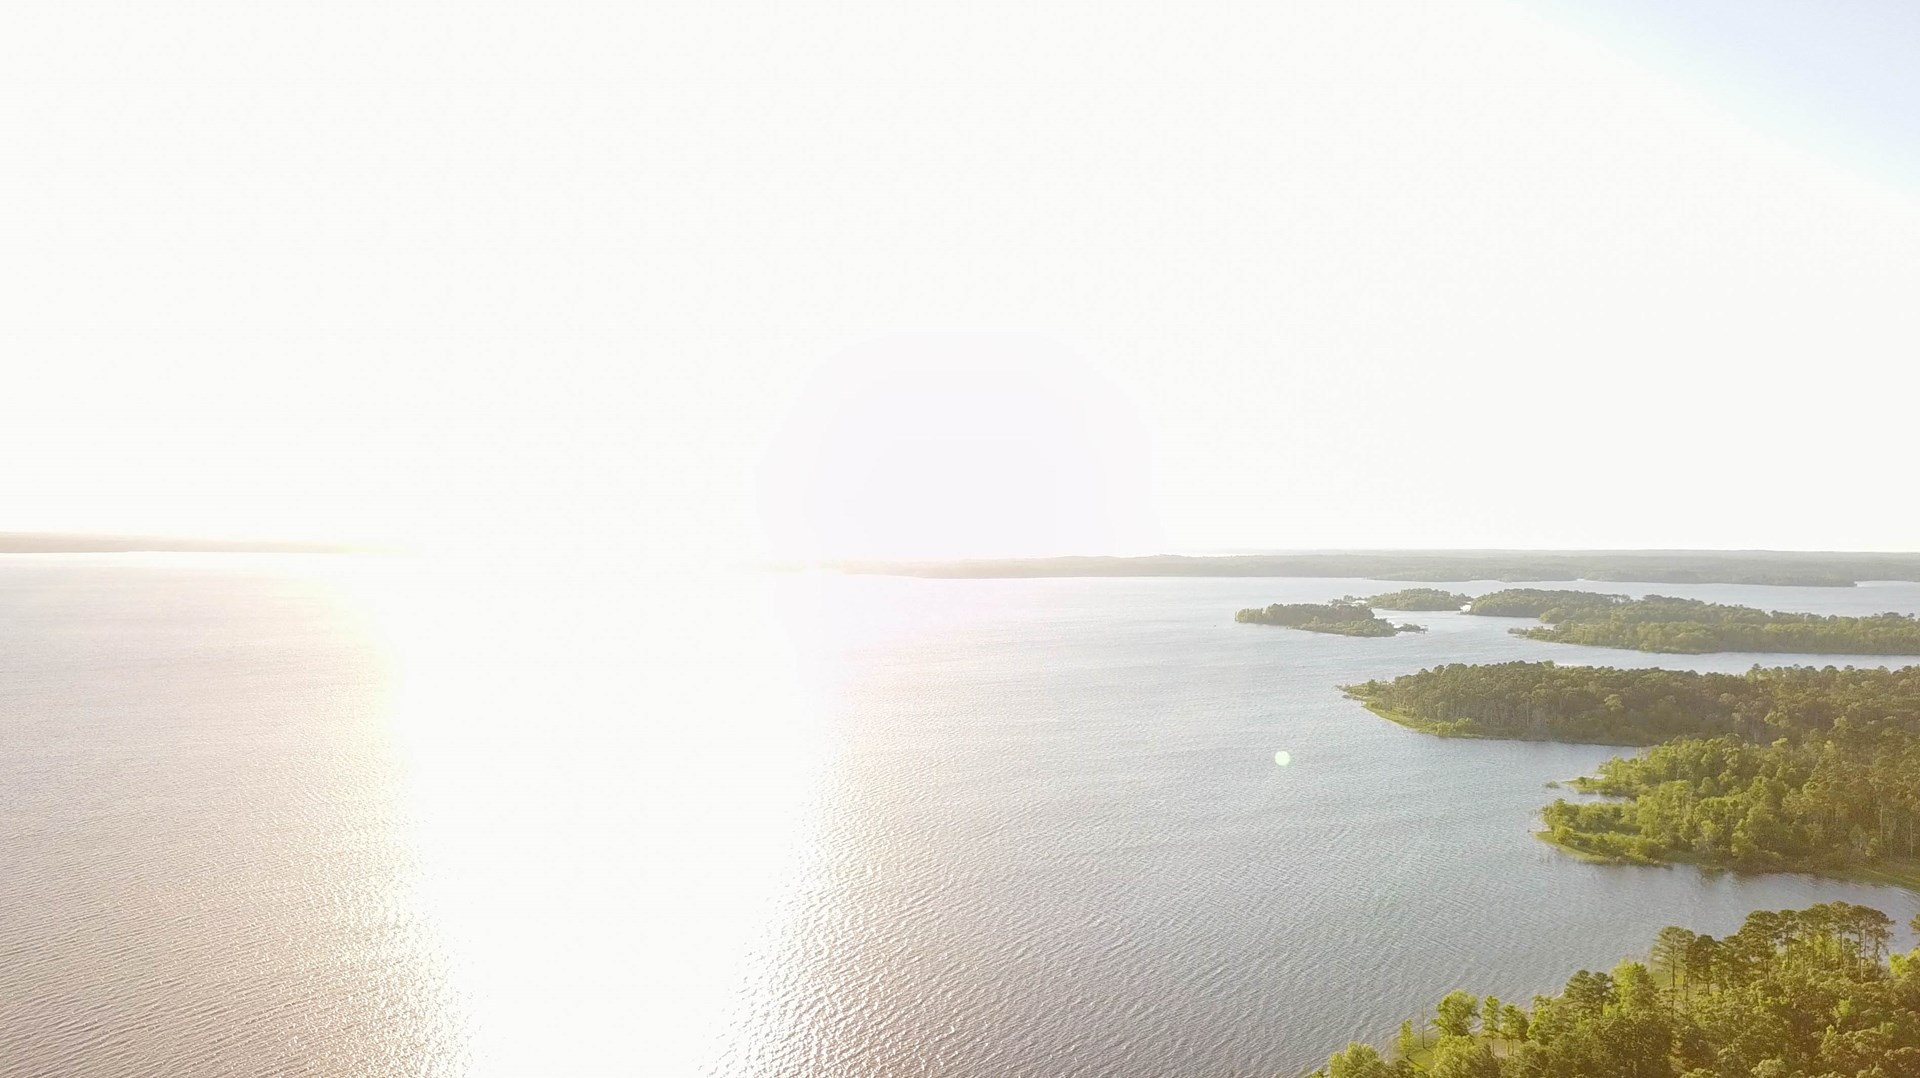 6.68 Acres | LAKE SAM RAYBURN LAND FOR SALE, HWY FRONTAGE